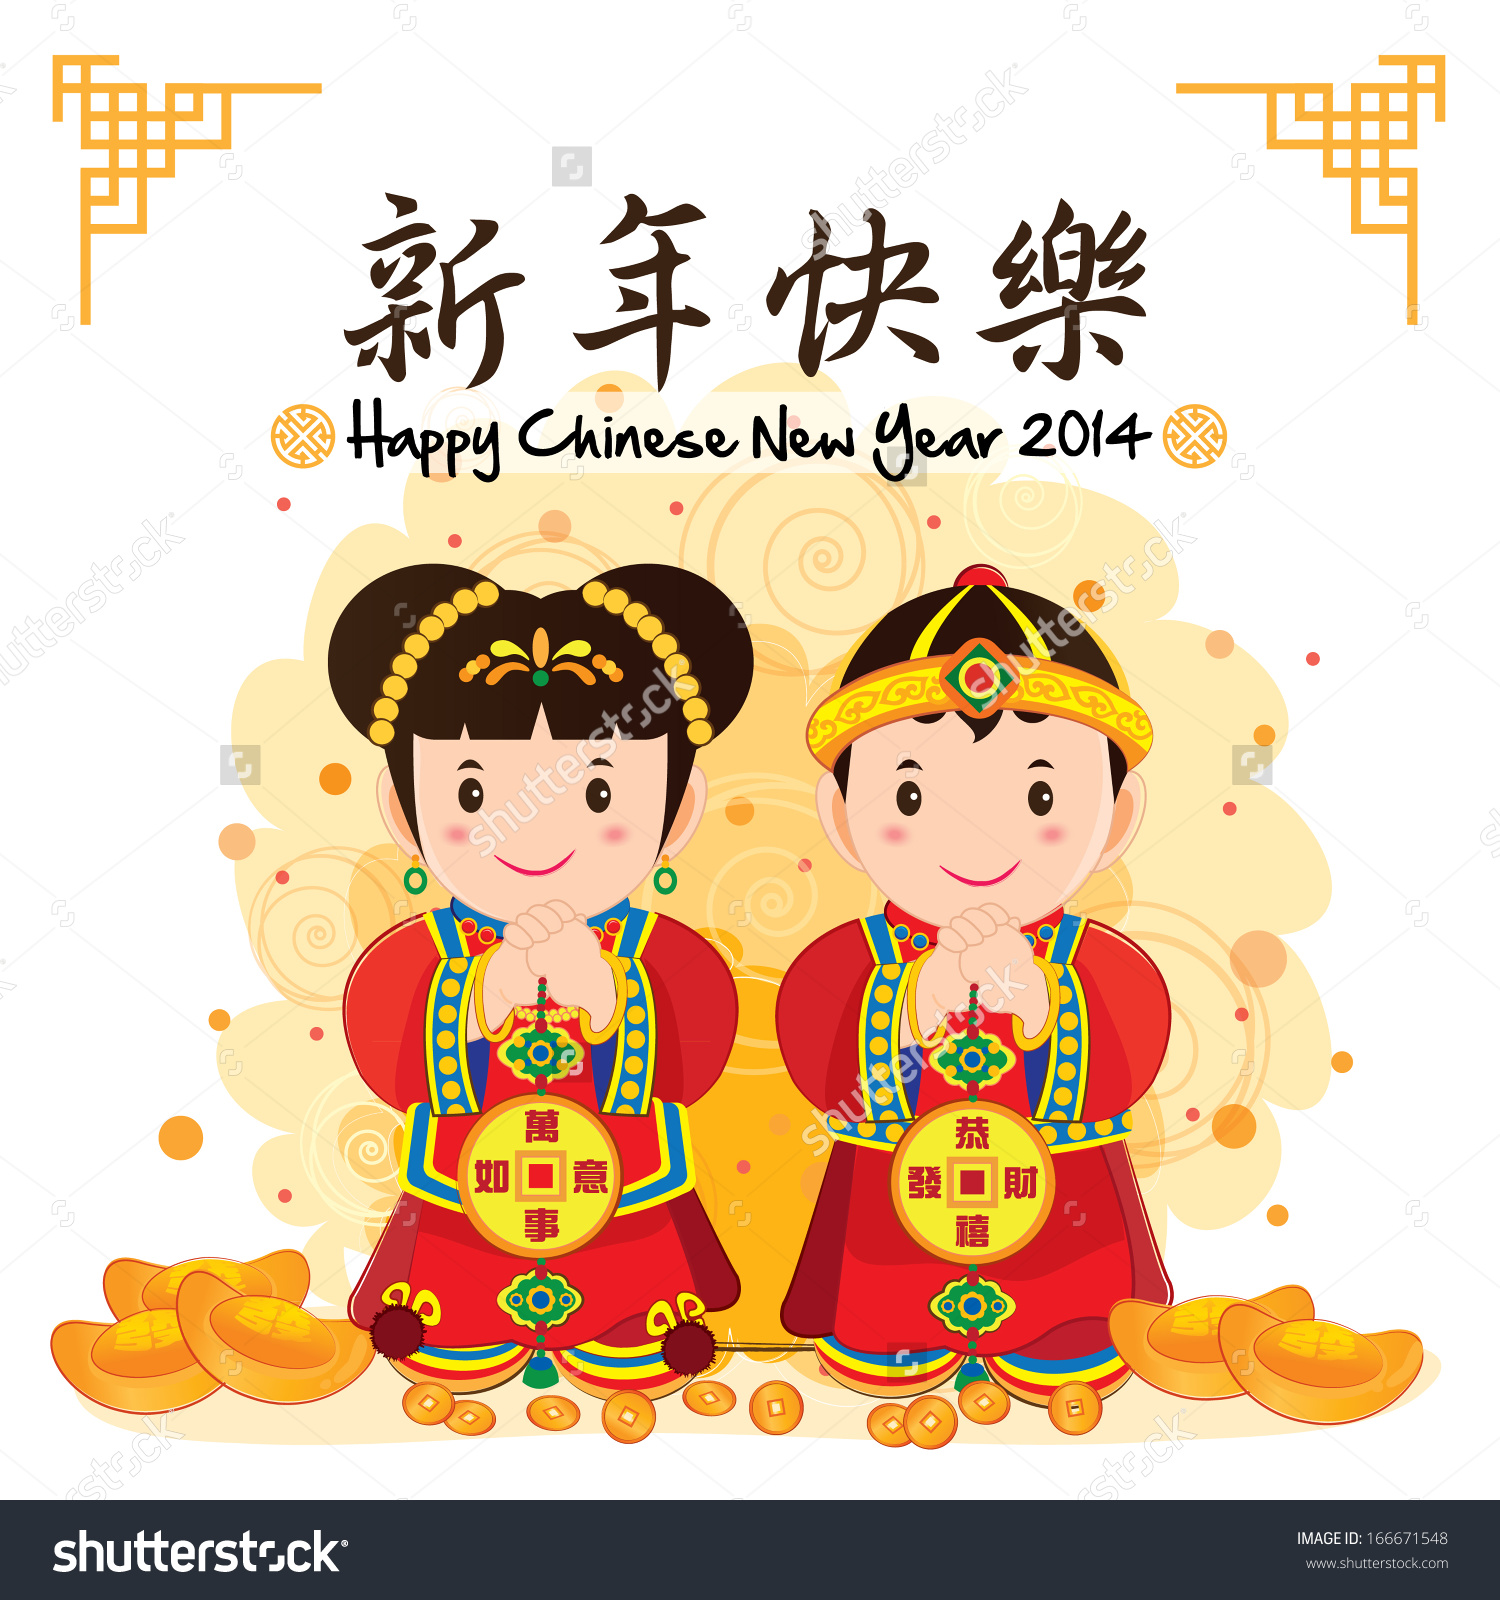 Me Gusta Funnies Happy New Year 2014: Chinese New Year Outfit Clipart